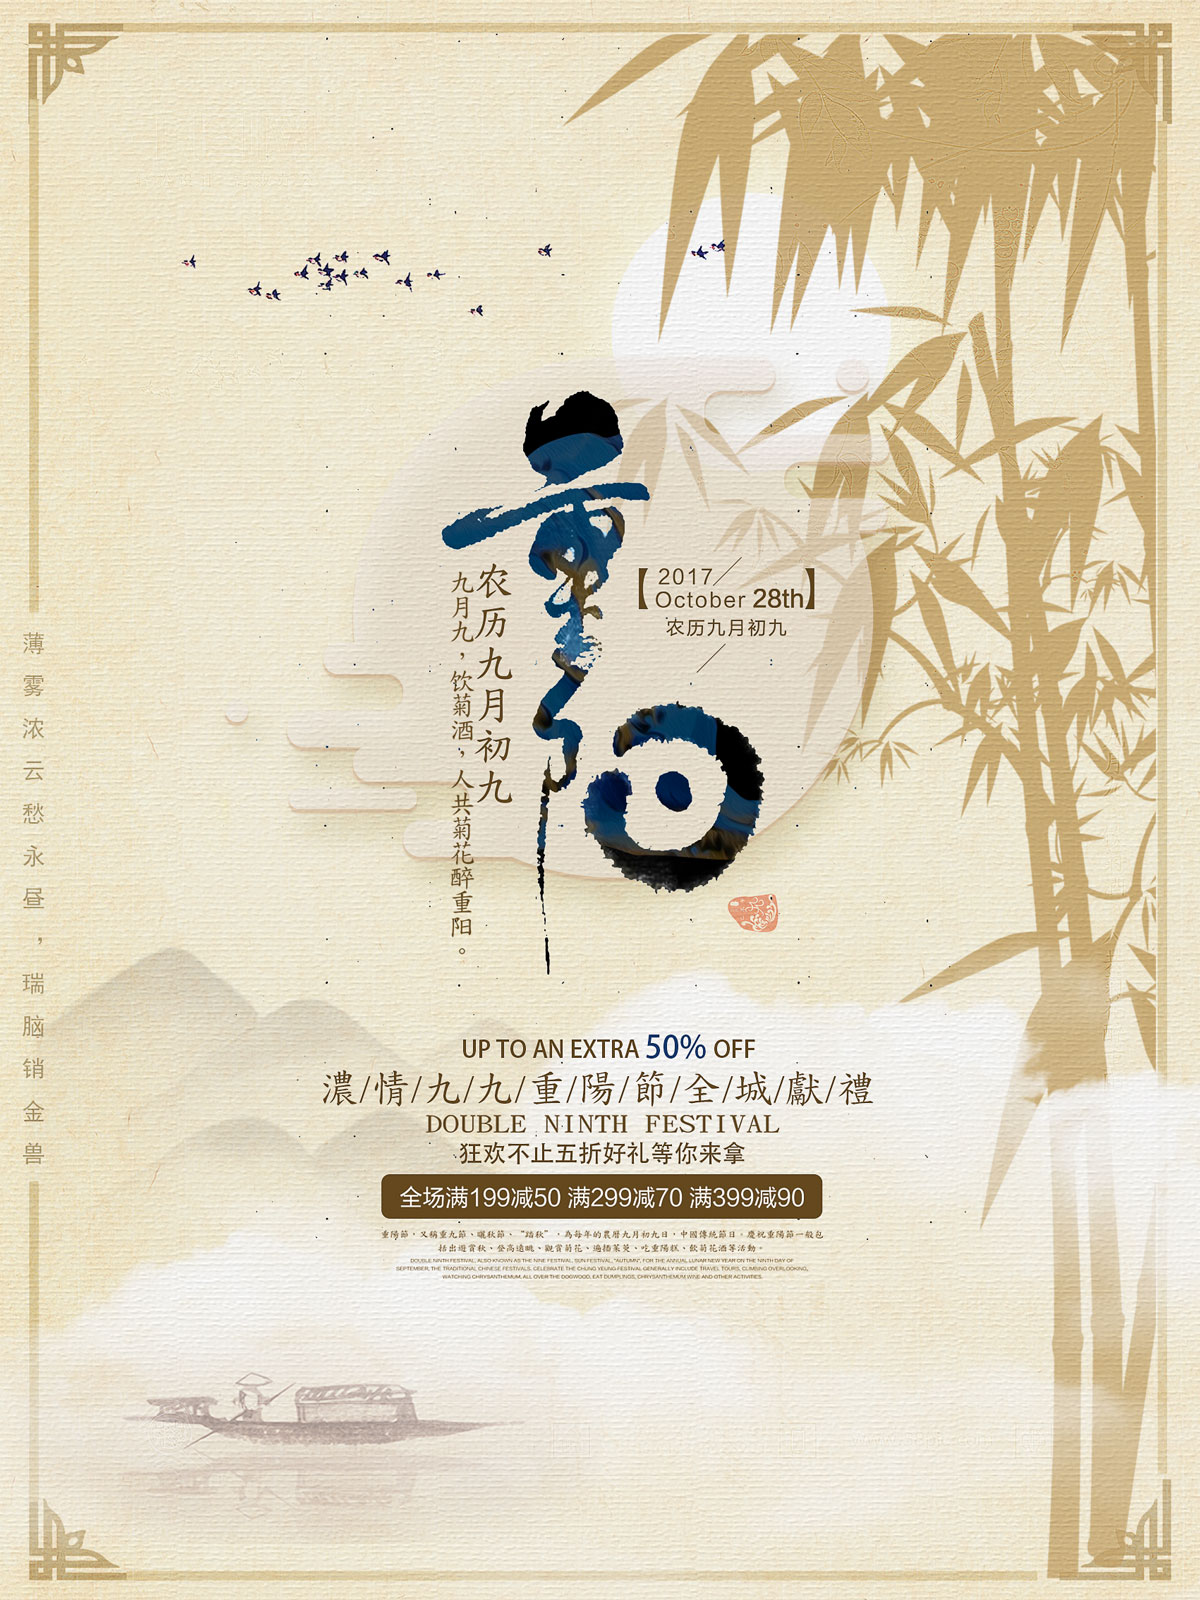 chinesefontdesign.com 2017 10 18 13 50 22 547691 China Chung Yeung Festival Poster   PSD File Free Download chung yeung festival poster Chung Yeung Festival